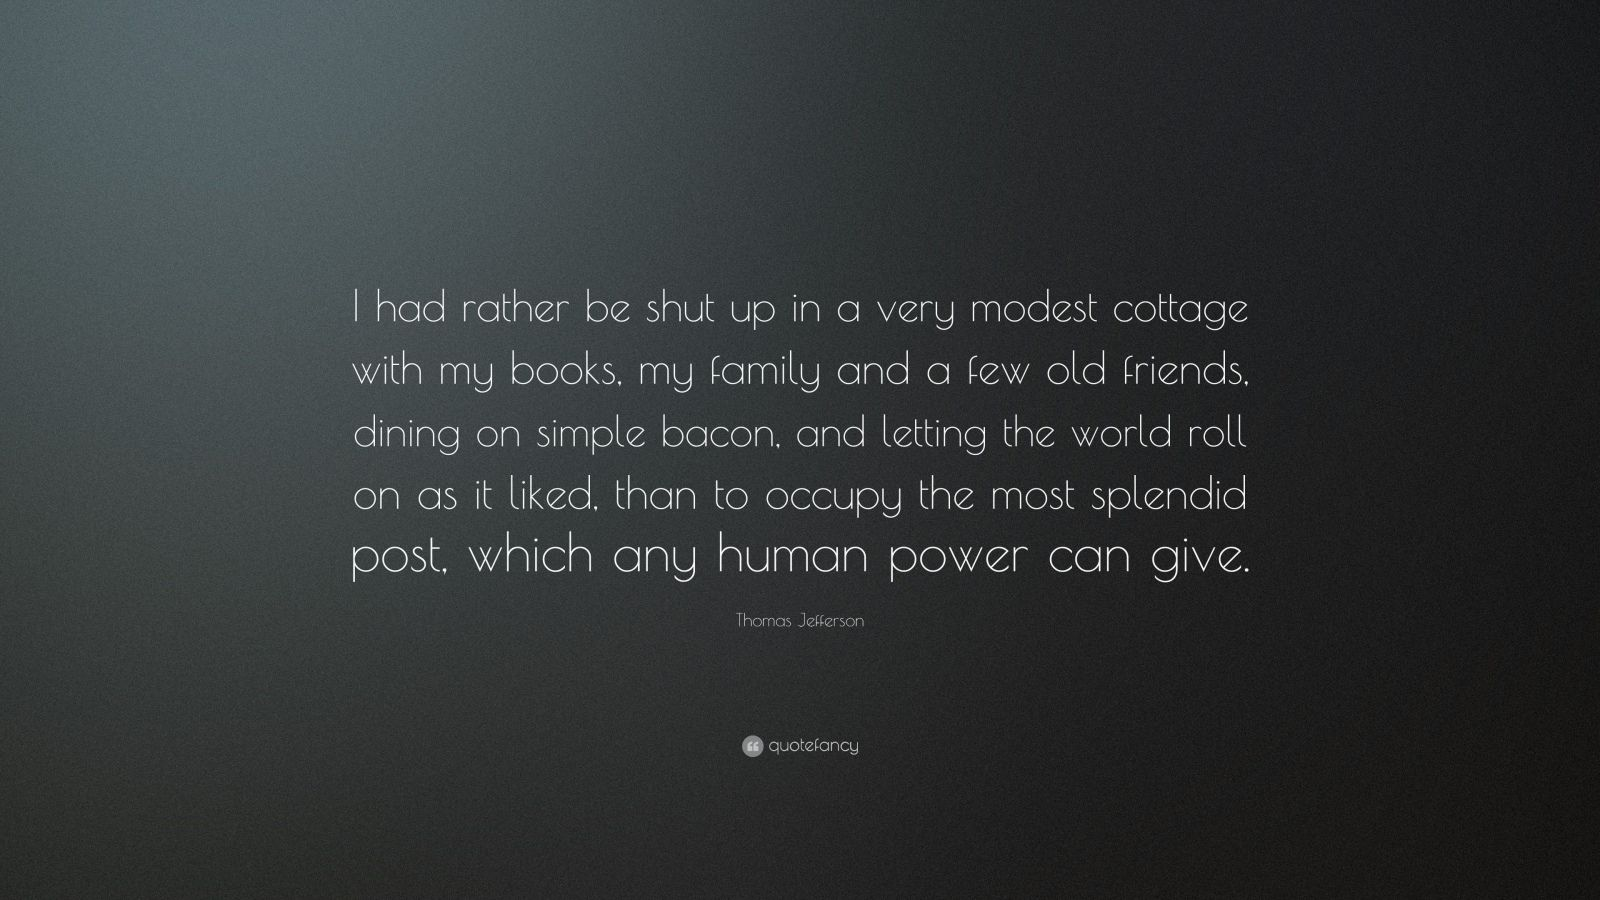 """Thomas Jefferson Quote: """"I had rather be shut up in a very modest cottage with my books, my family and a few old friends, dining on simple bacon, and letting the world roll on as it liked, than to occupy the most splendid post, which any human power can give."""""""